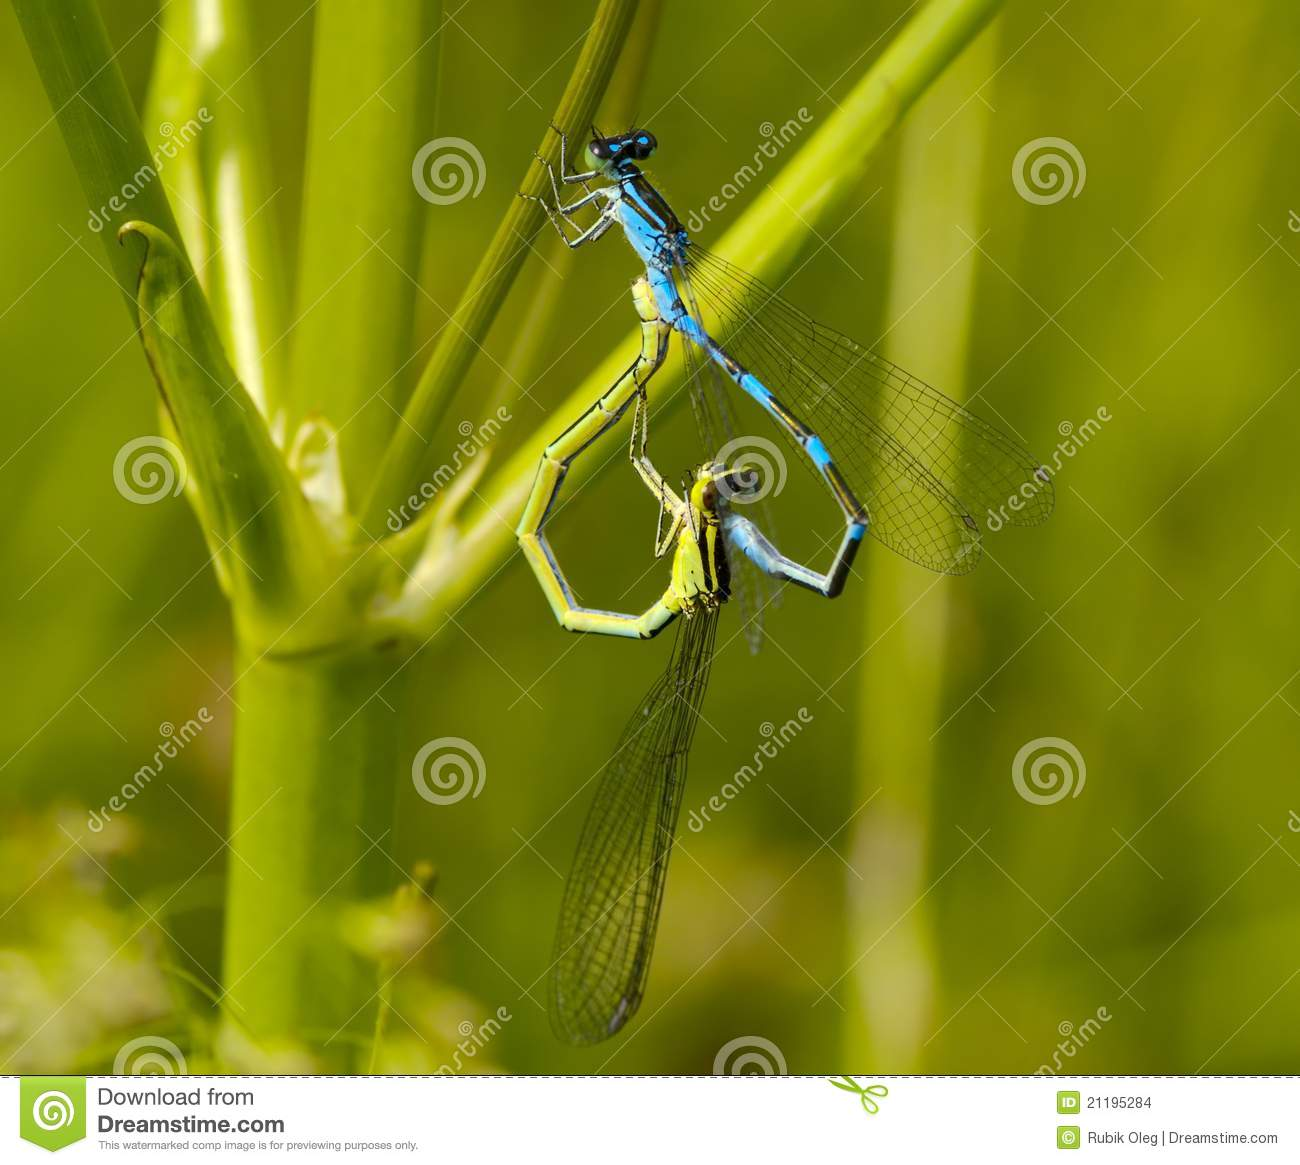 Mating of dragonflies